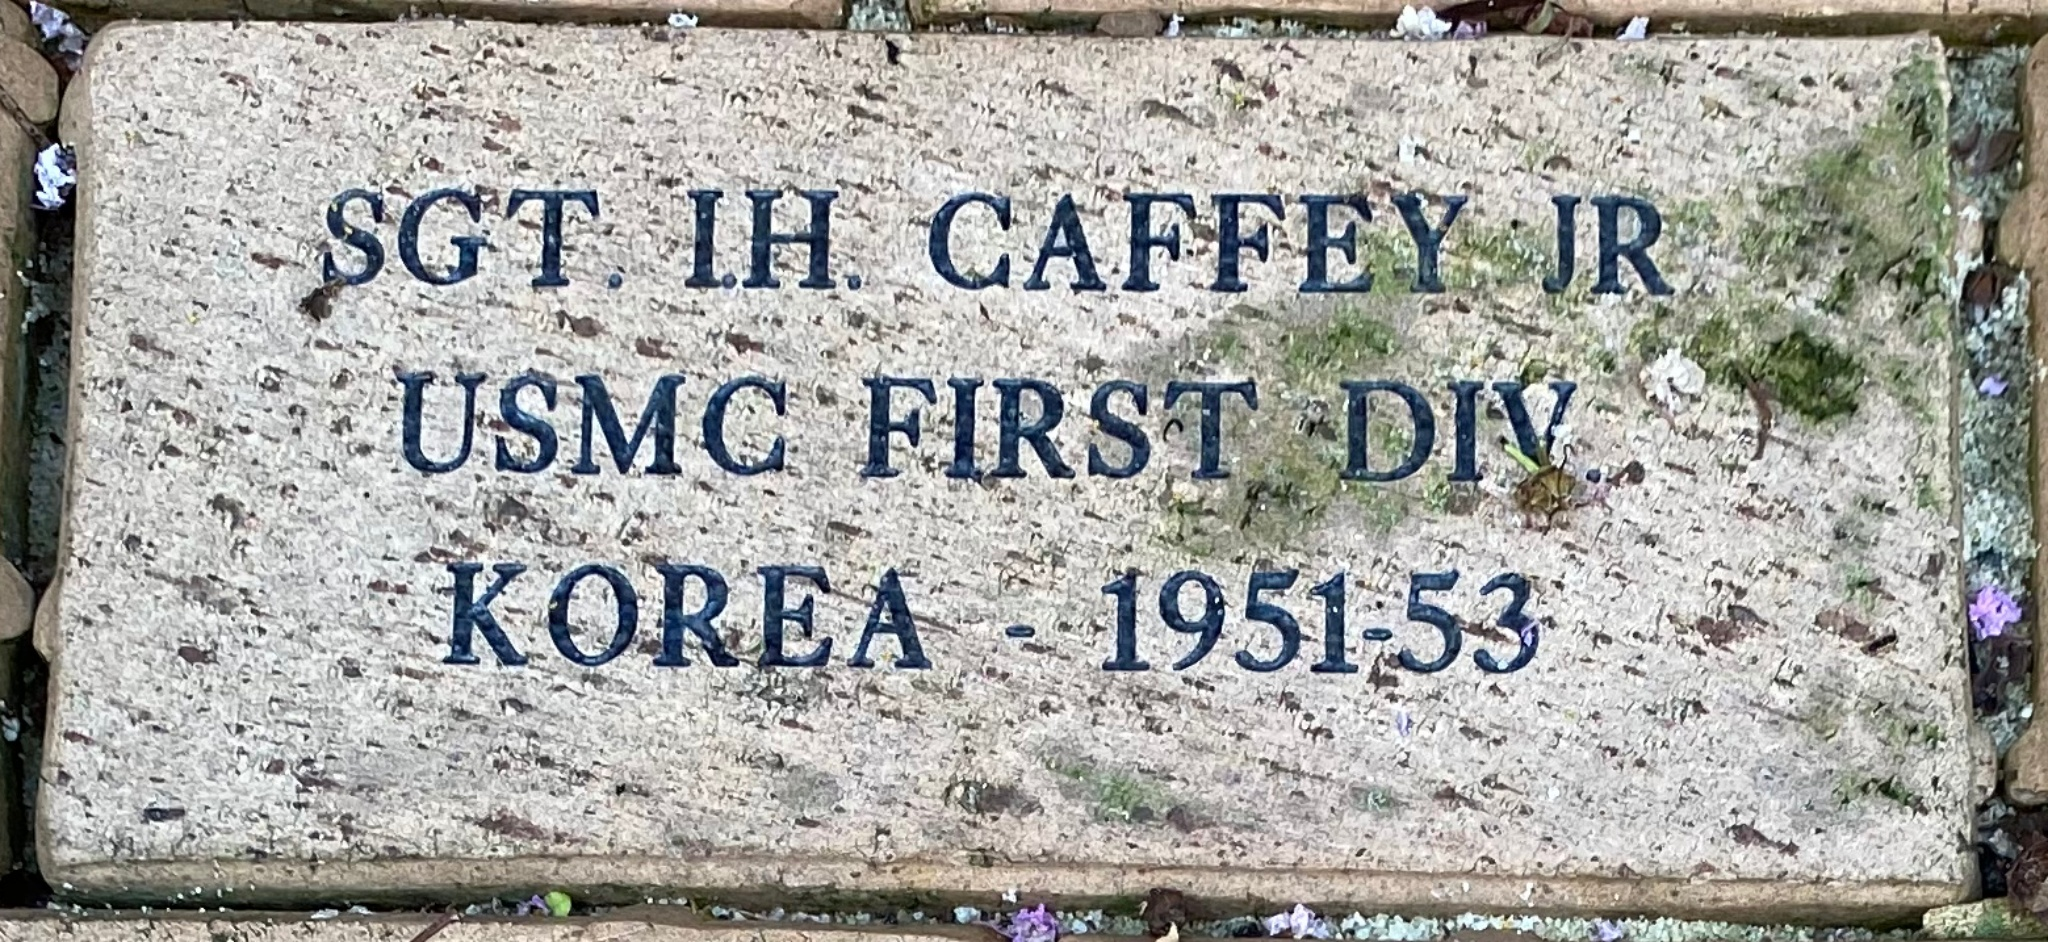 SGT. I.H. CAFFEY JR USMC FIRST DIV KOREA 1951-53